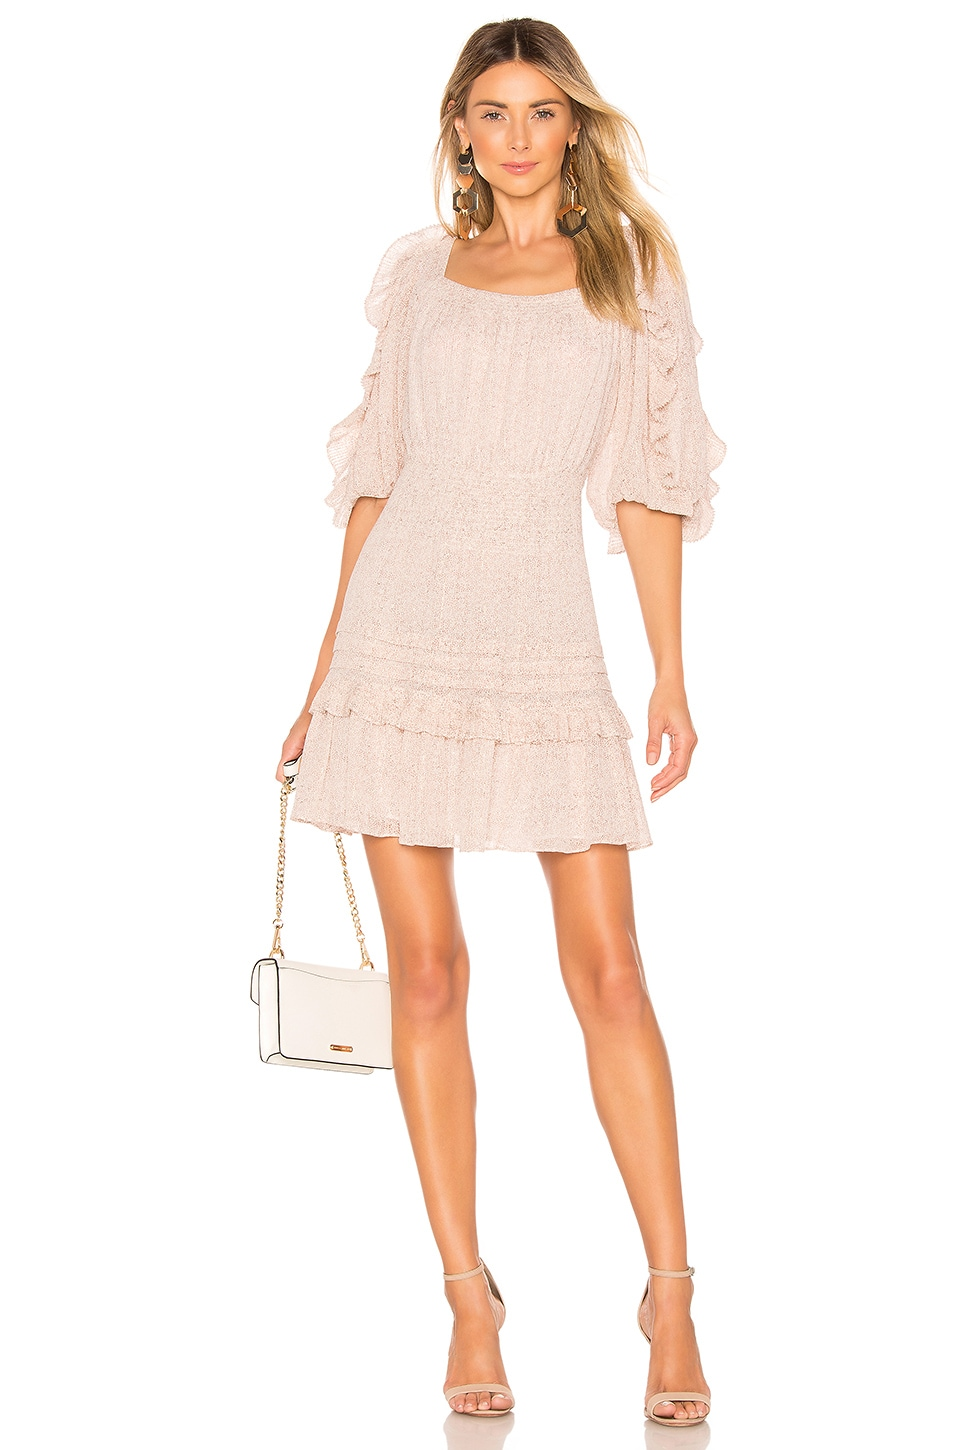 Rebecca Taylor Block Vine Dress in Cream Combo